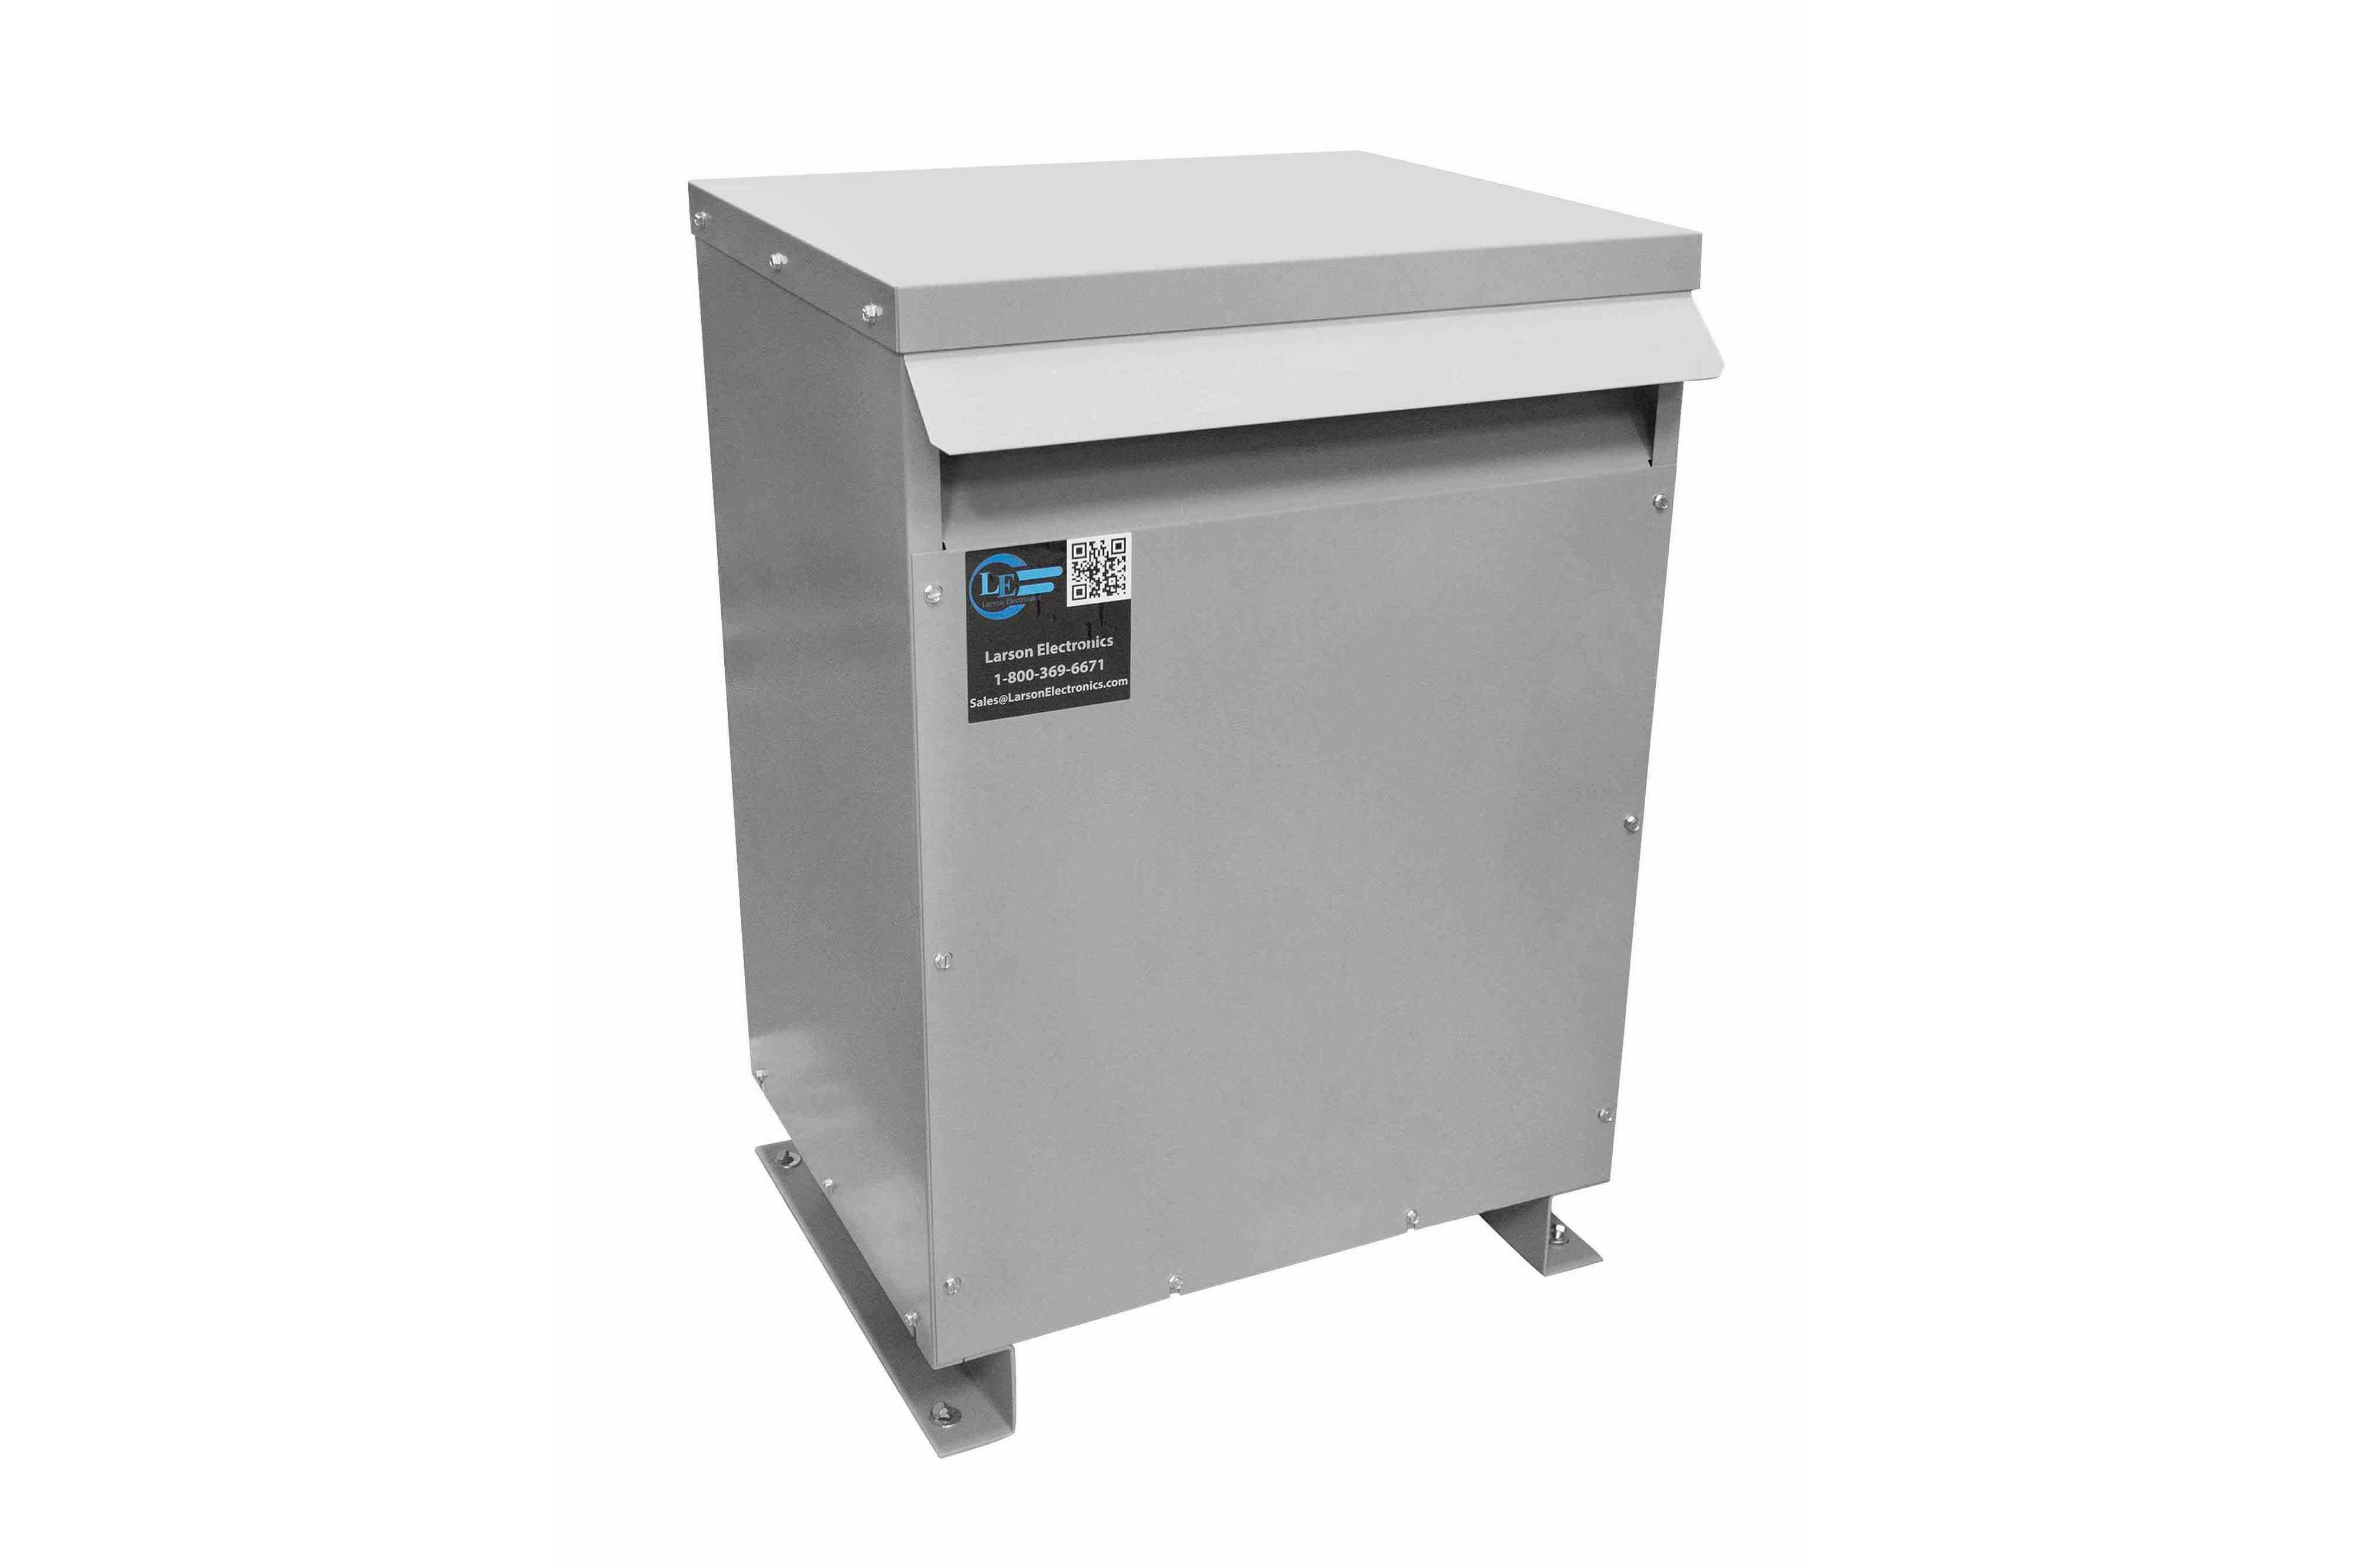 12 kVA 3PH Isolation Transformer, 460V Wye Primary, 240V Delta Secondary, N3R, Ventilated, 60 Hz